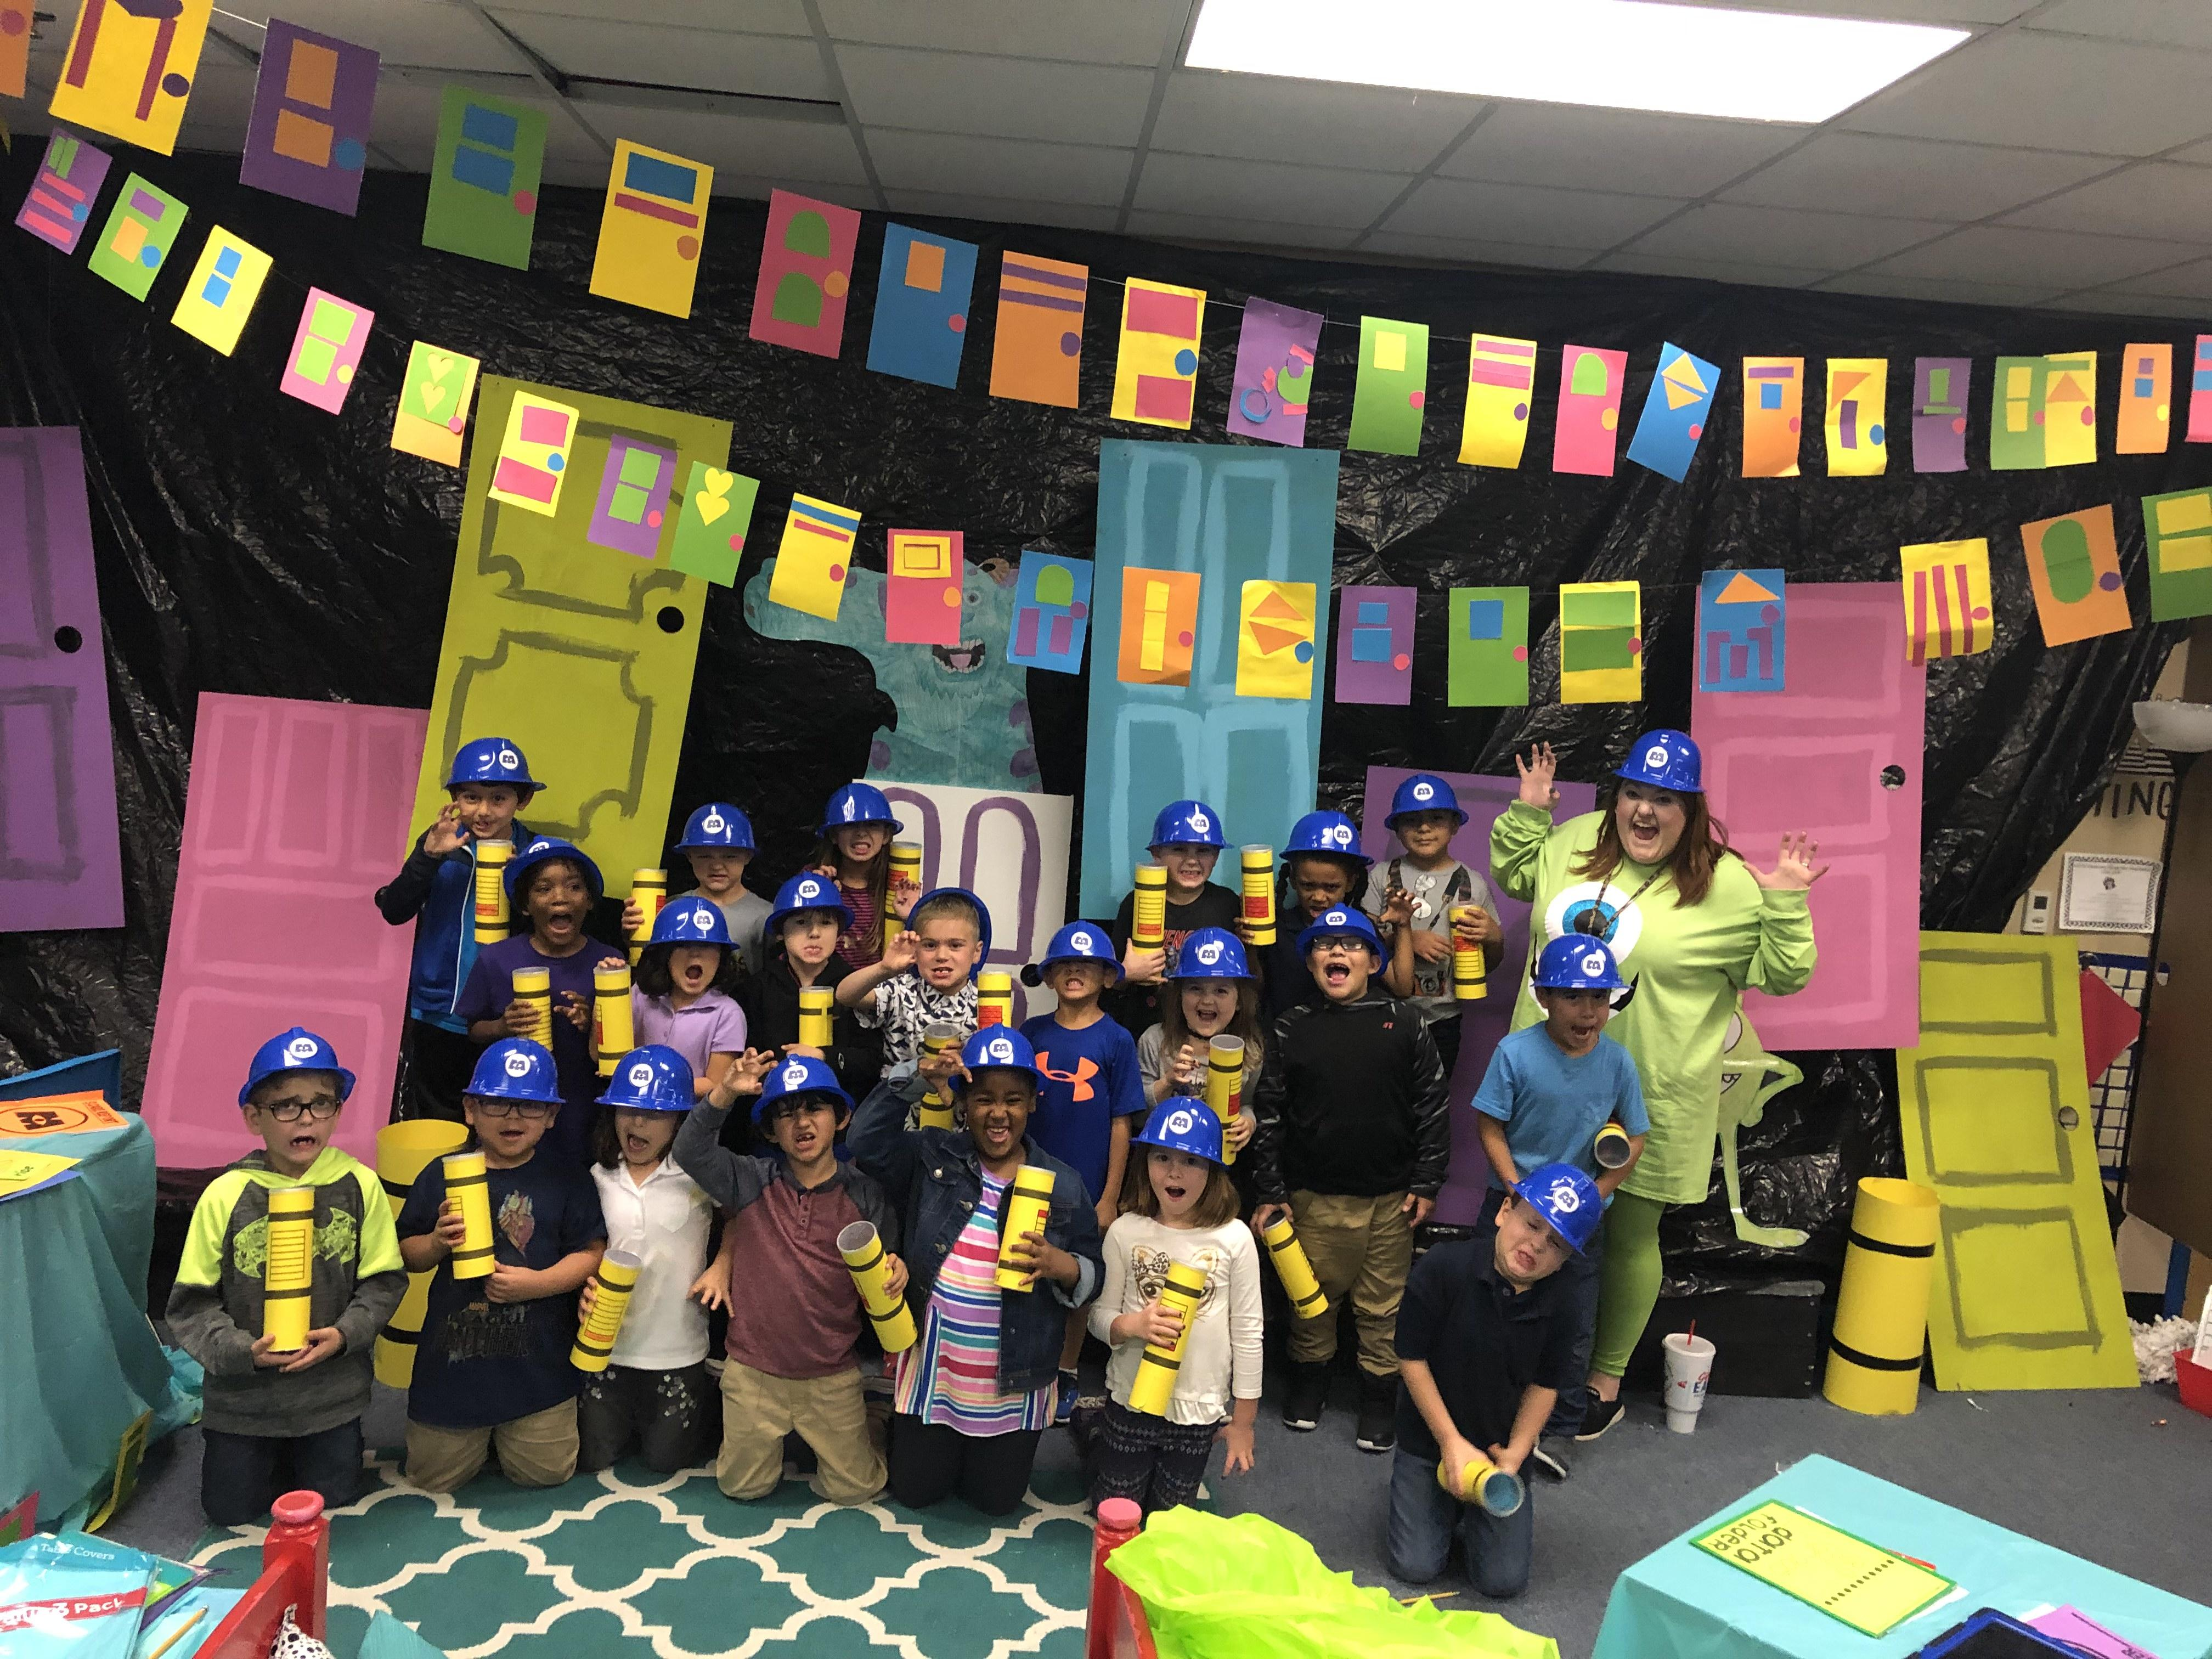 Katie Pearson's first graders had a scare-ific day when their classroom was turned into Monsters, Inc.